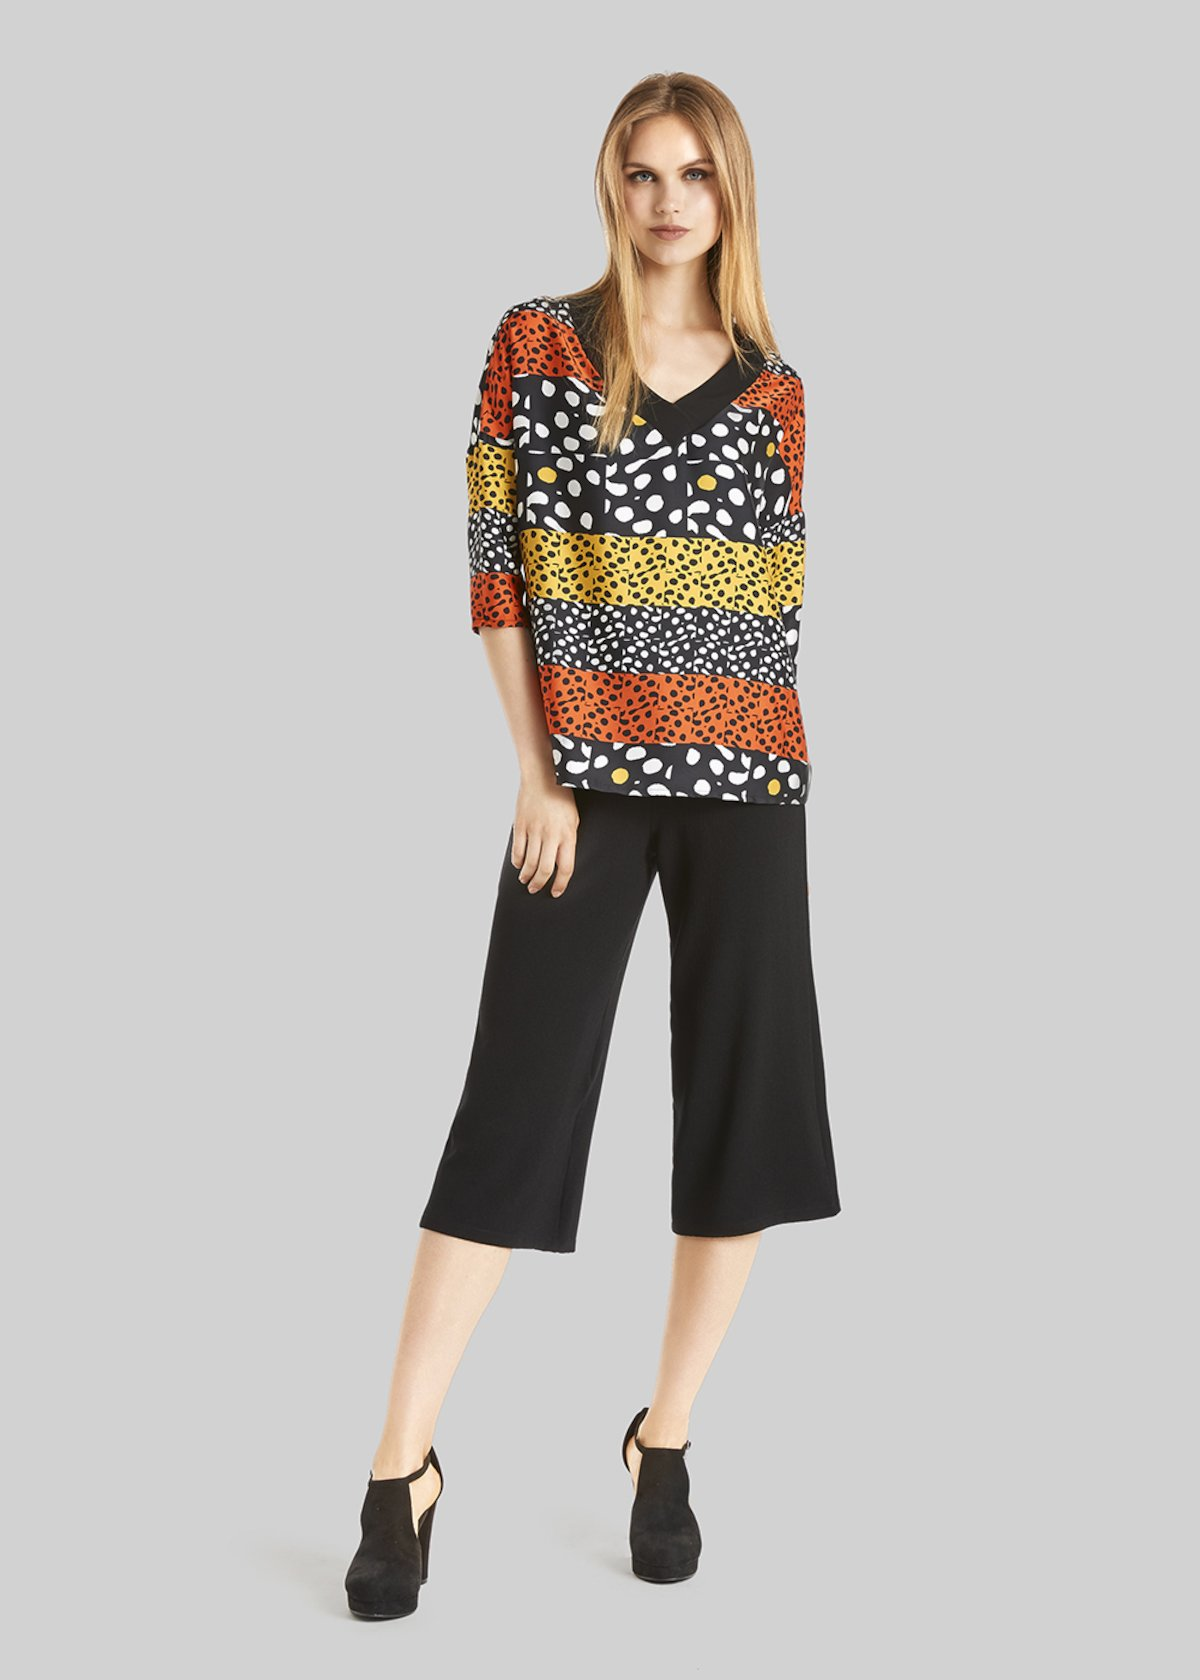 Primo short palazzo trousers - Black - Woman - Category image